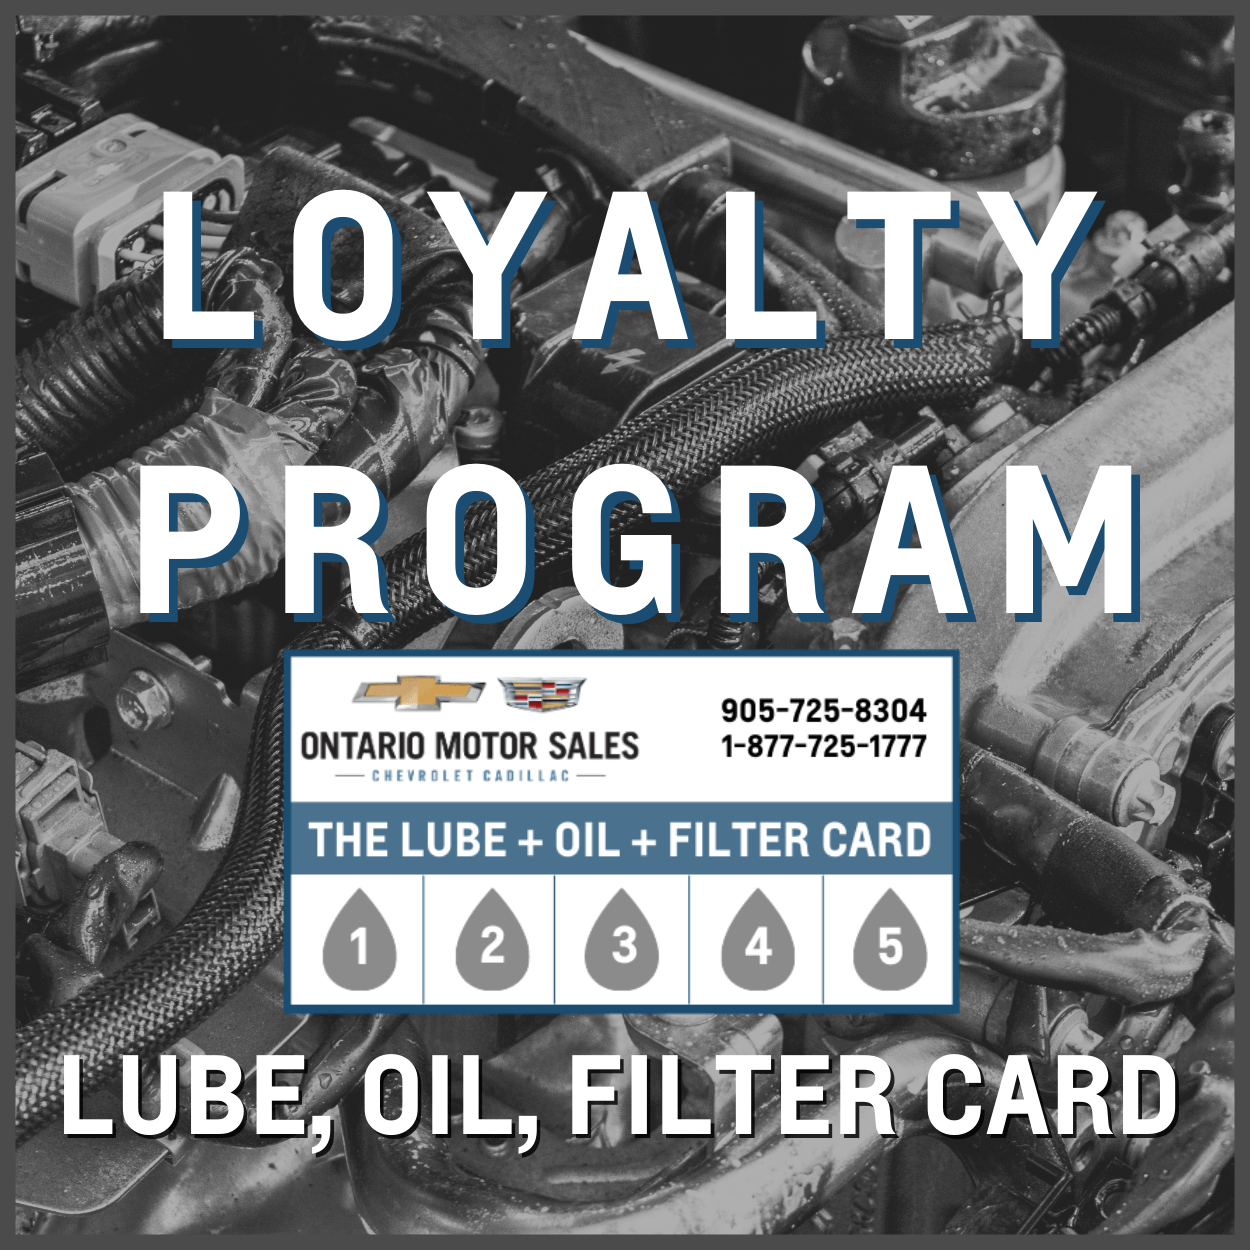 Loyalty program lube oil and filter